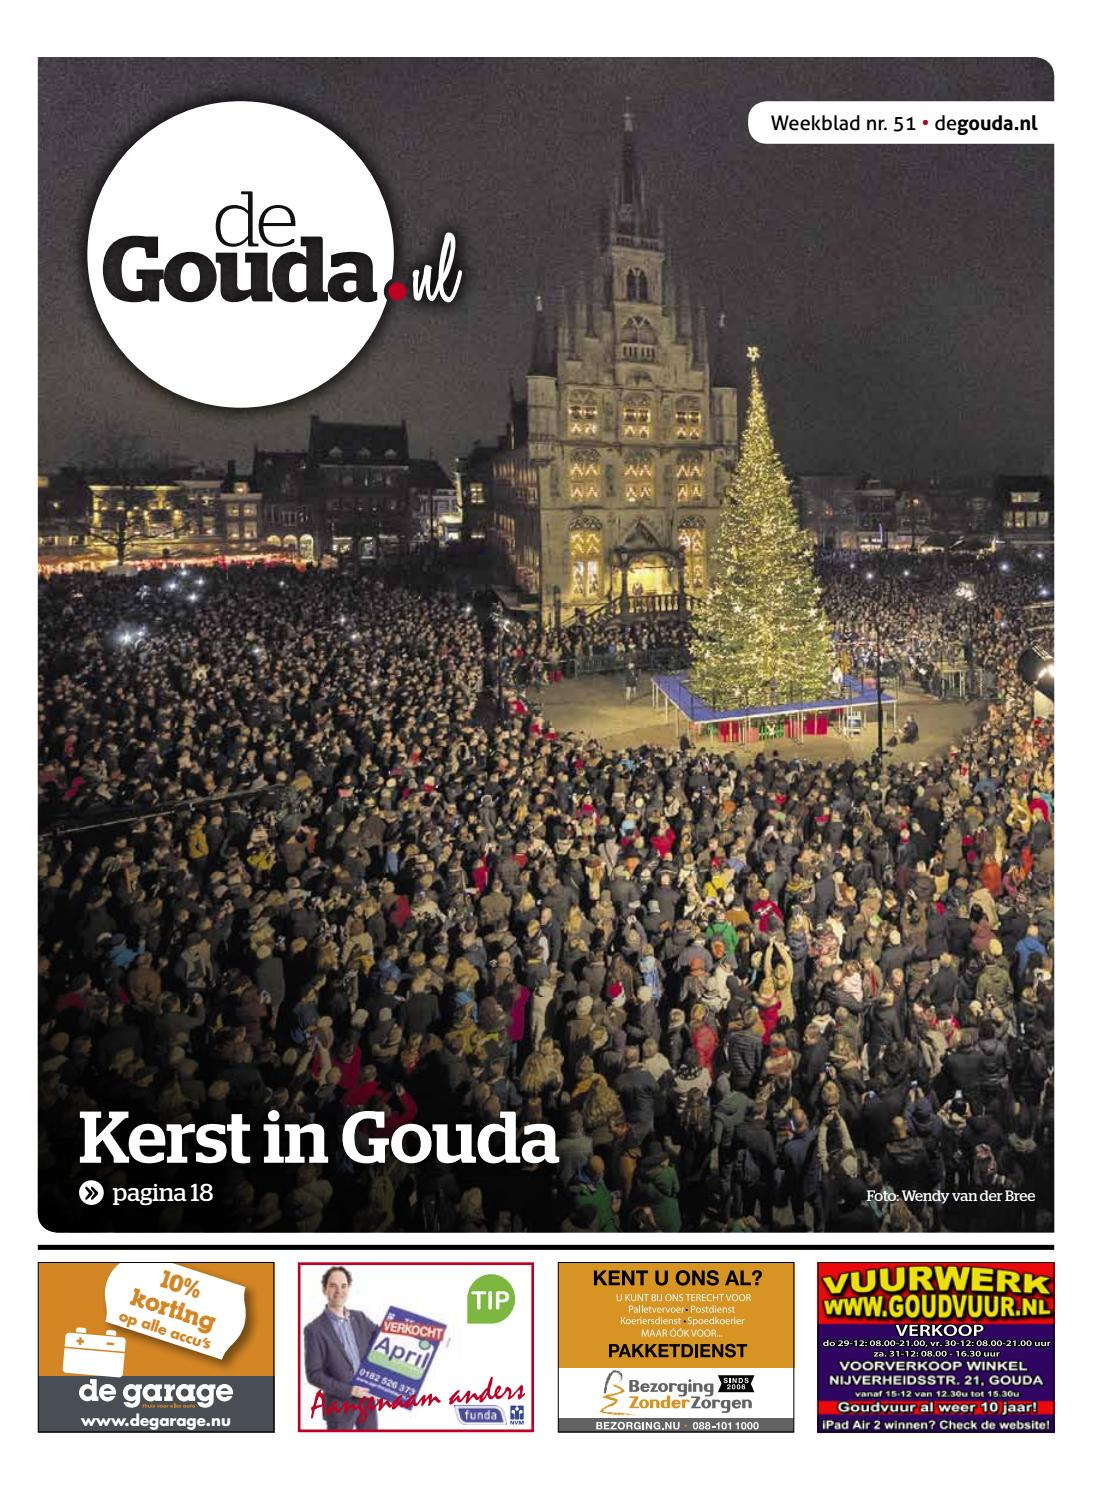 Weekblad degouda, 22 december 2016 by degouda   issuu